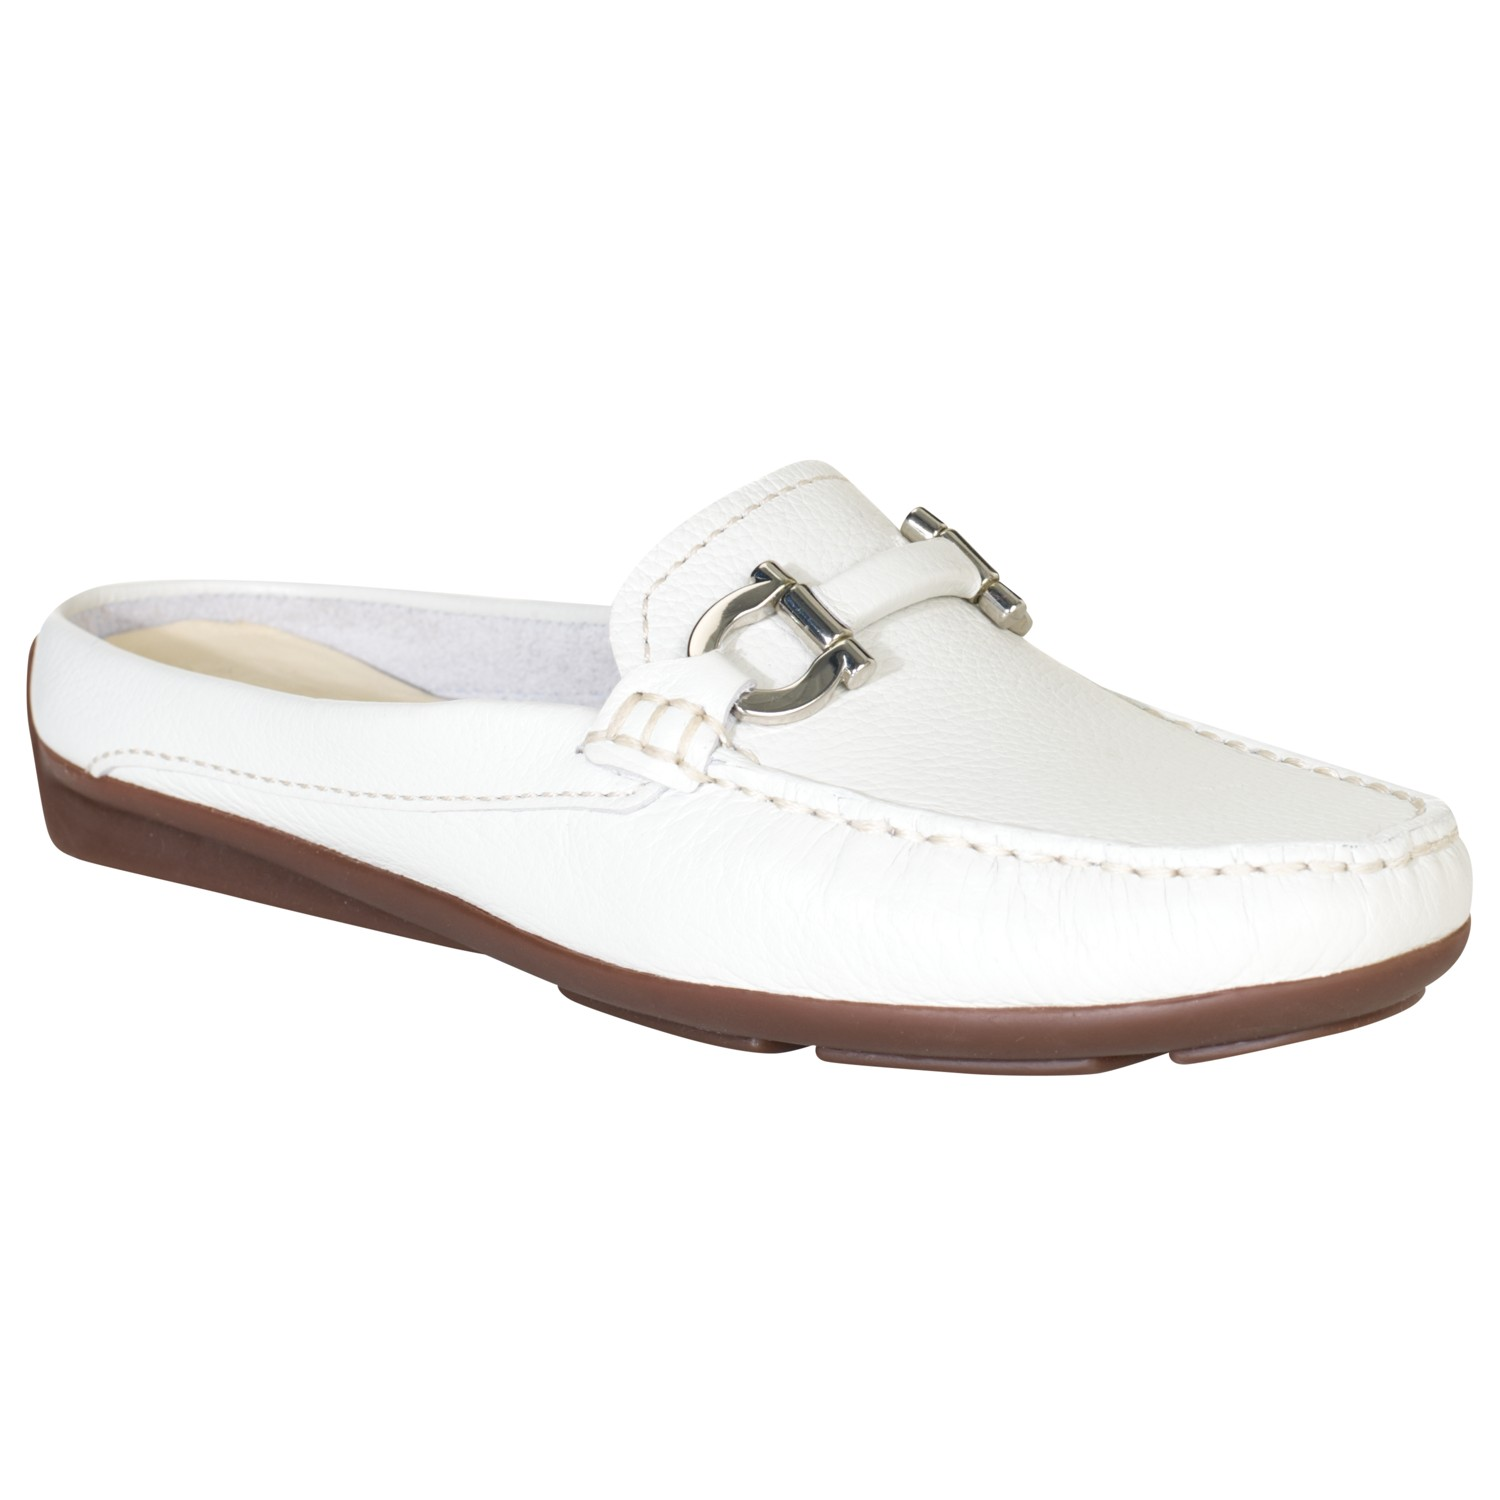 Ladies White Loafers Shoes